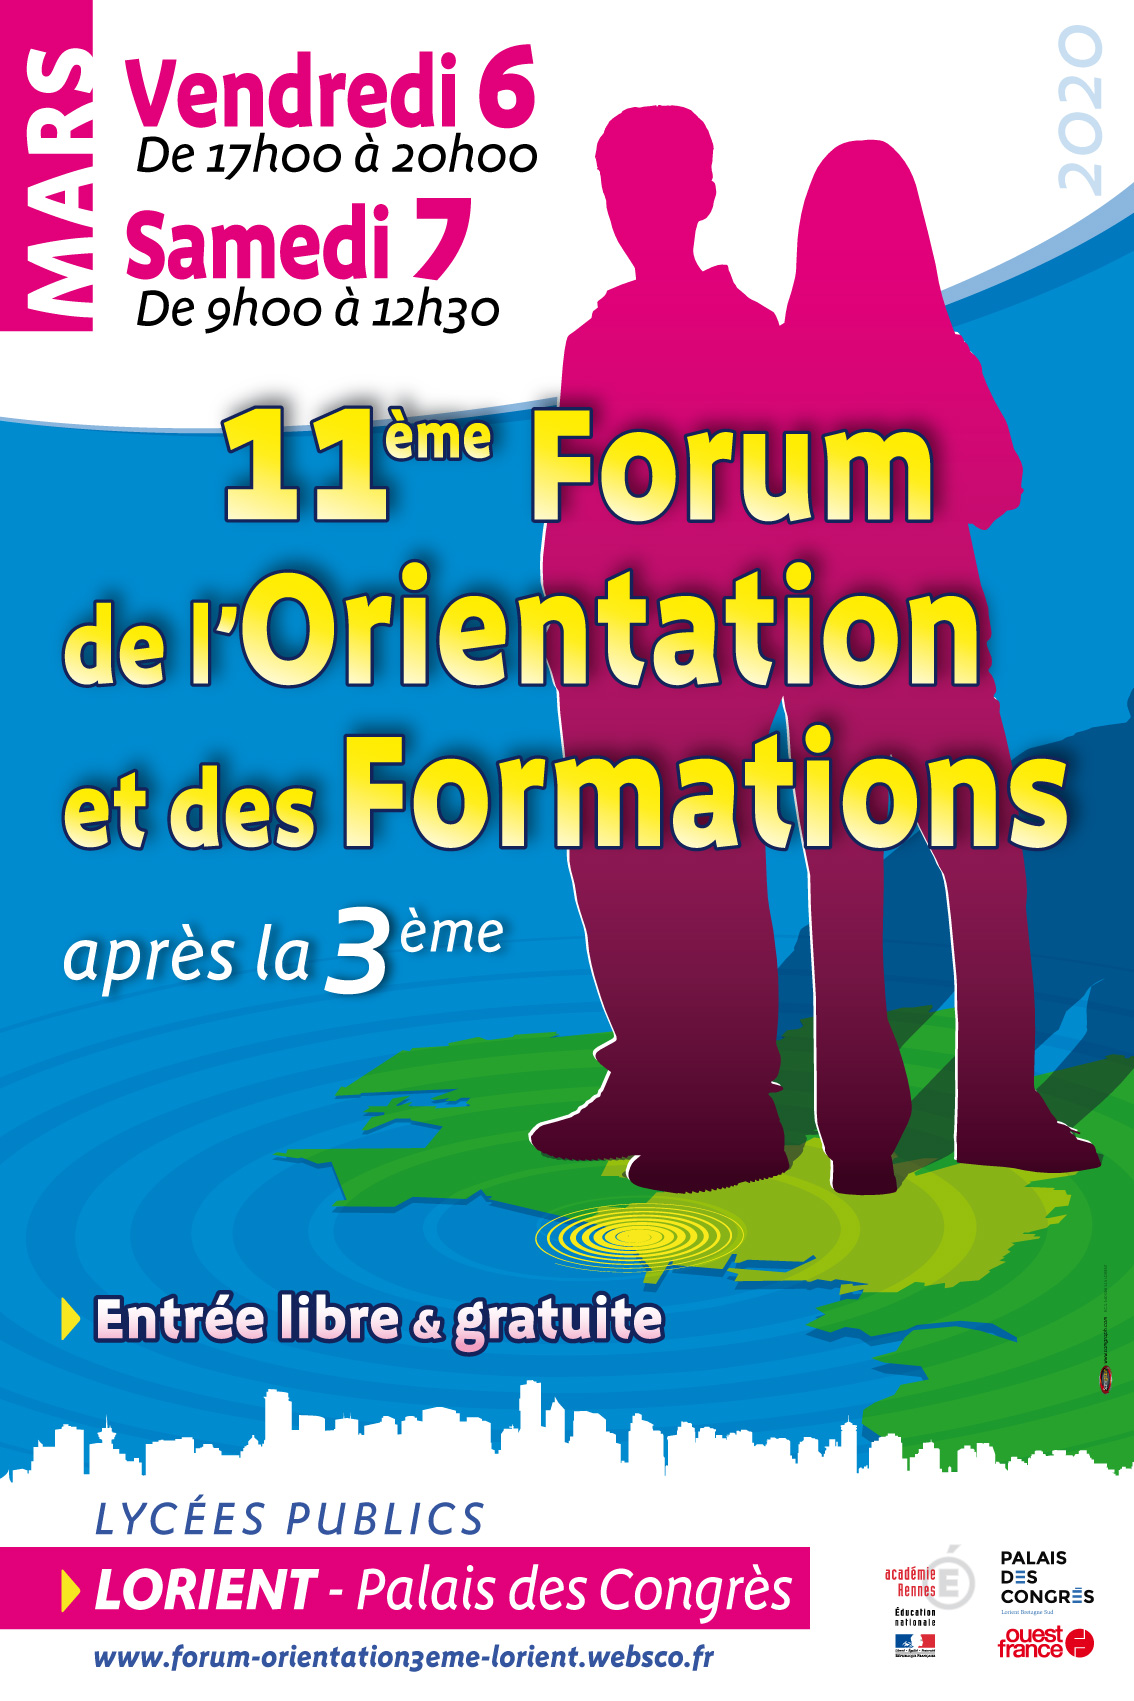 40x60-Forum-Formations2020 Lorient